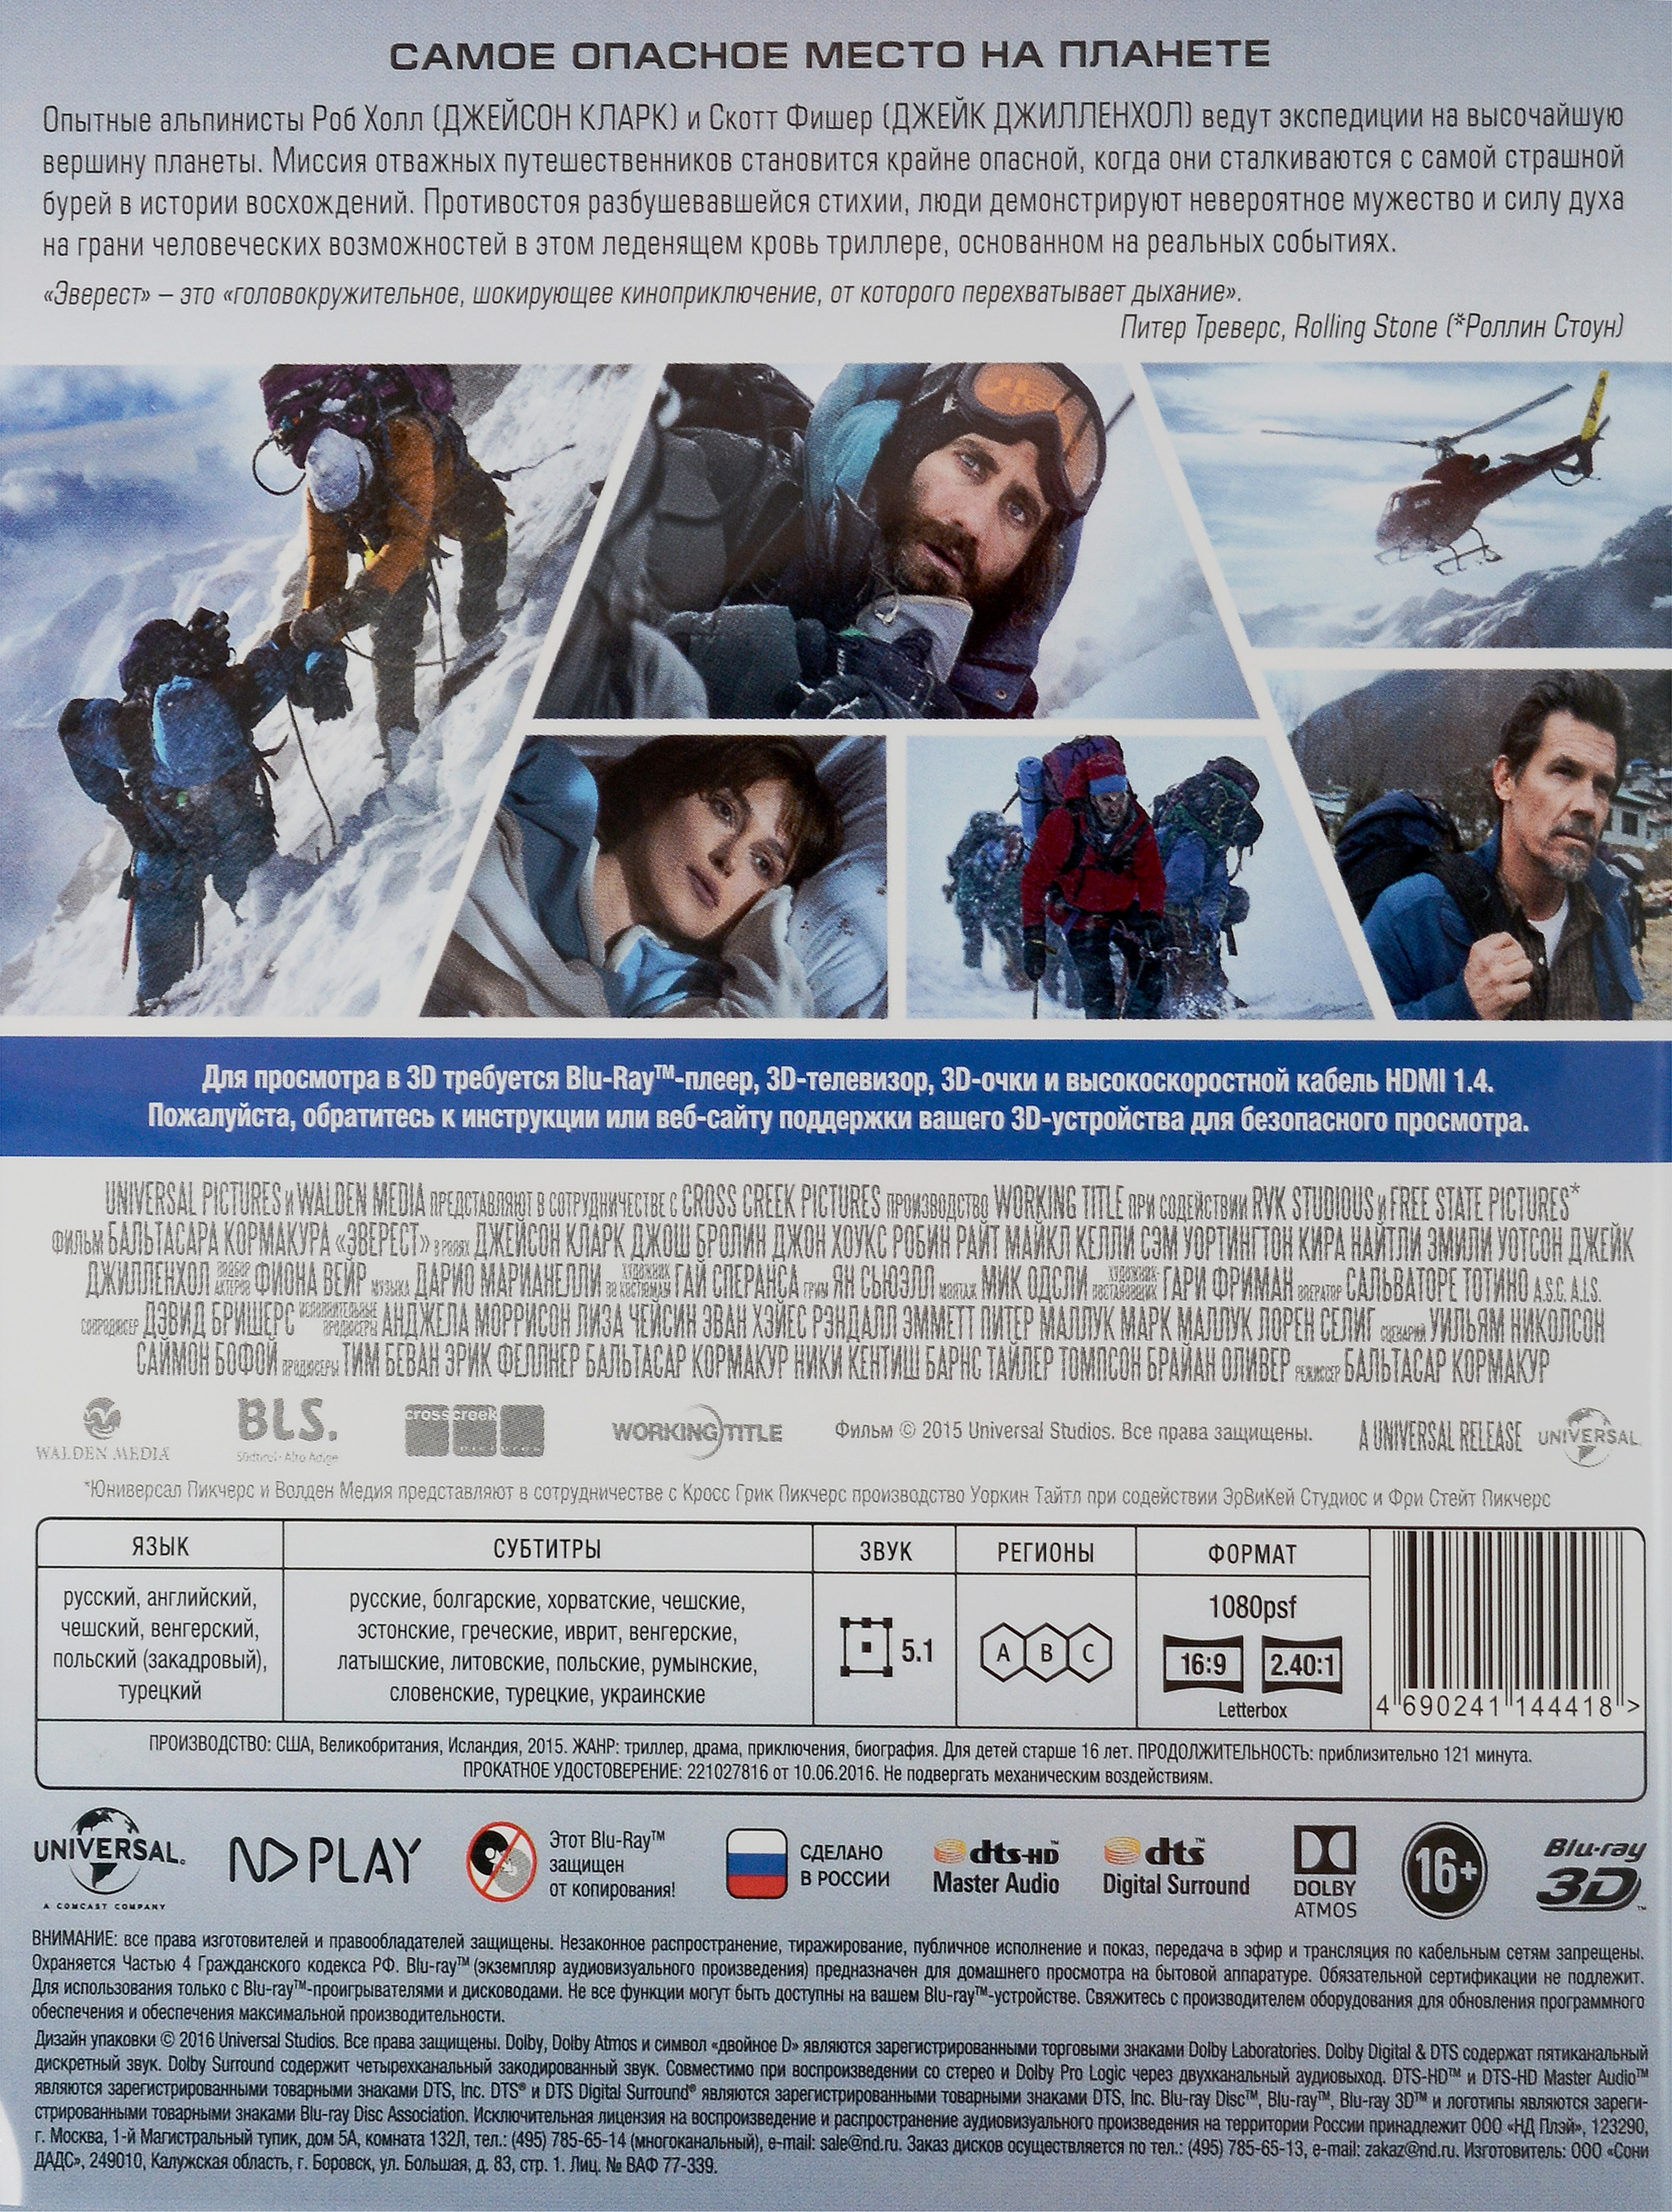 Эверест 3D (Blu-ray) Cross Creek Pictures,Free State Pictures,Universal Pictures,Walden Media,Working Title Films